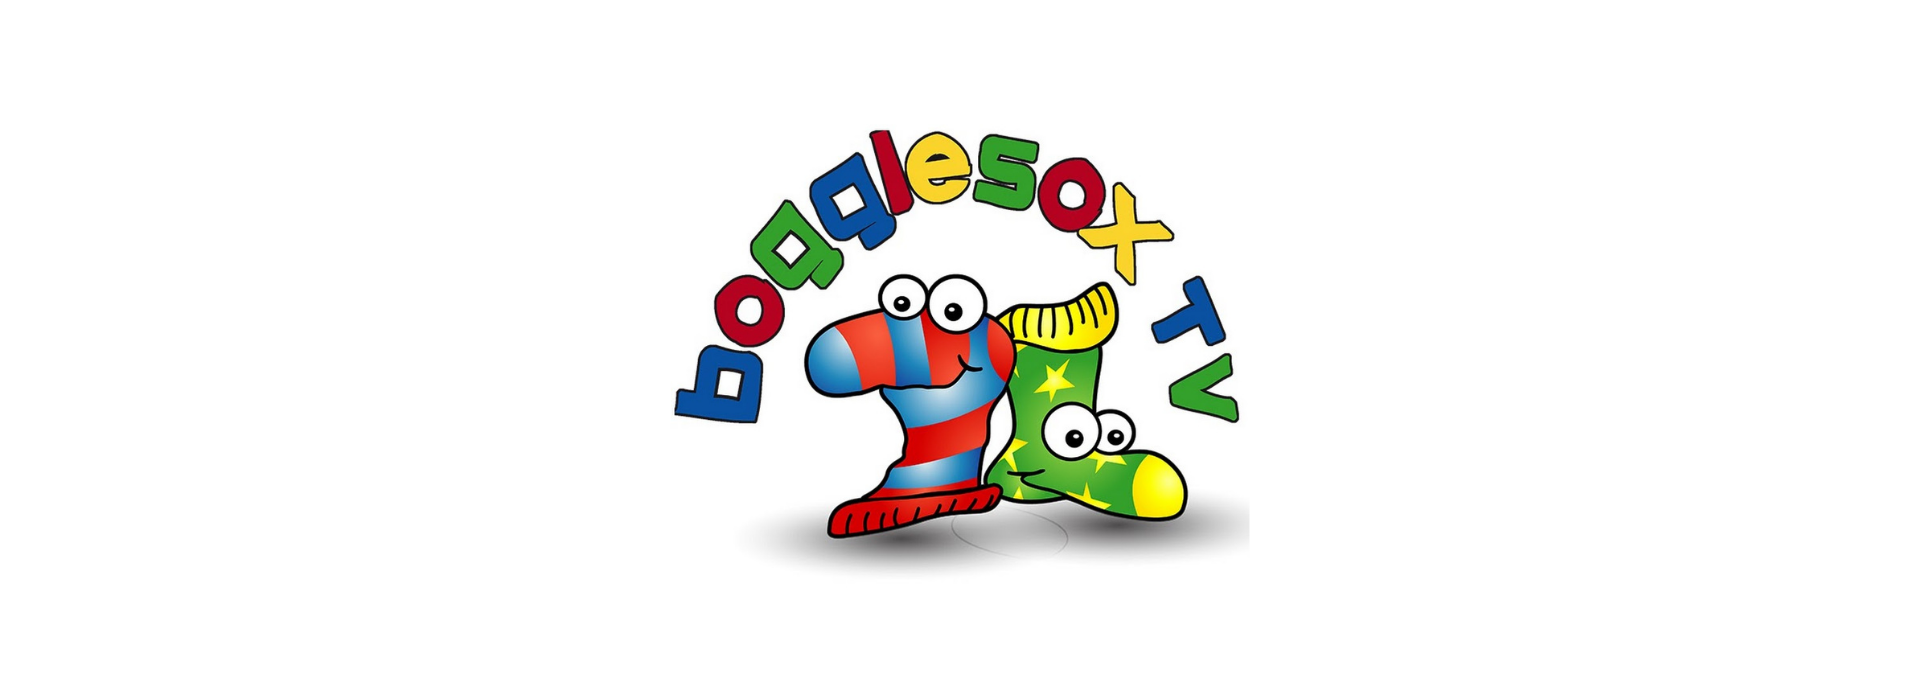 Bogglesox TV channel